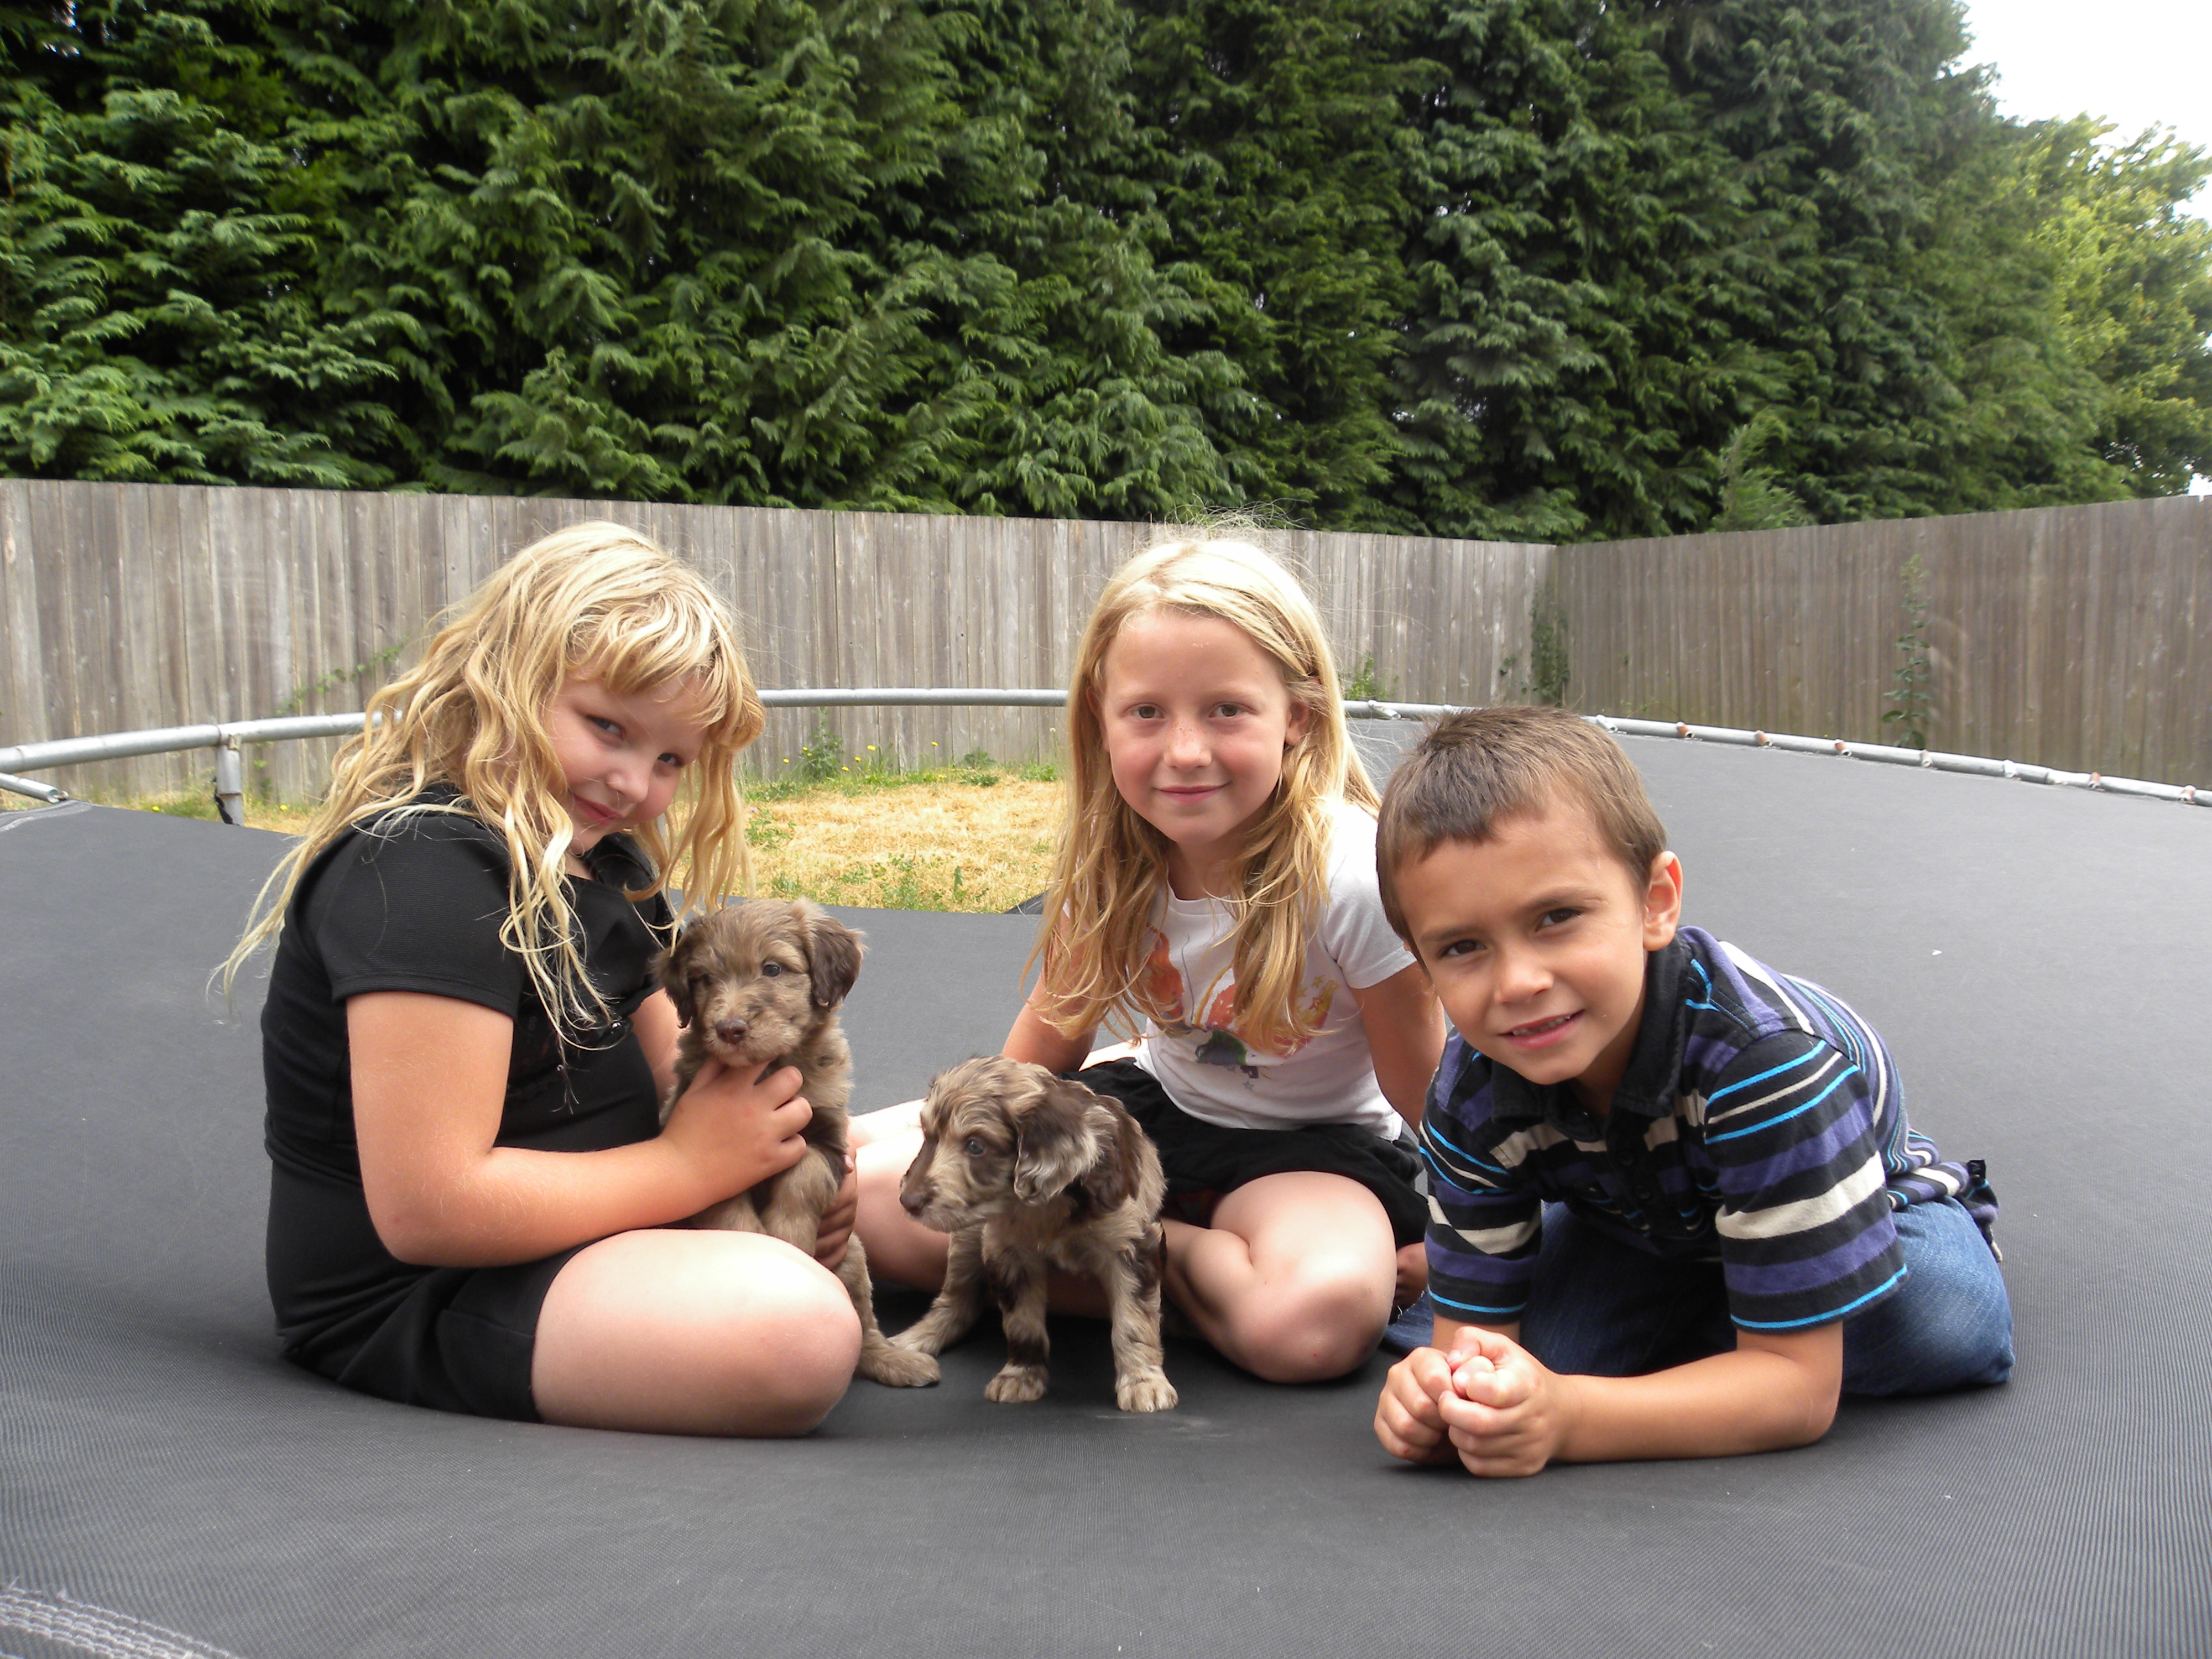 Flower and Sammy on the Trampoline with the kids - F1 Aussiedoodles 5 weeks